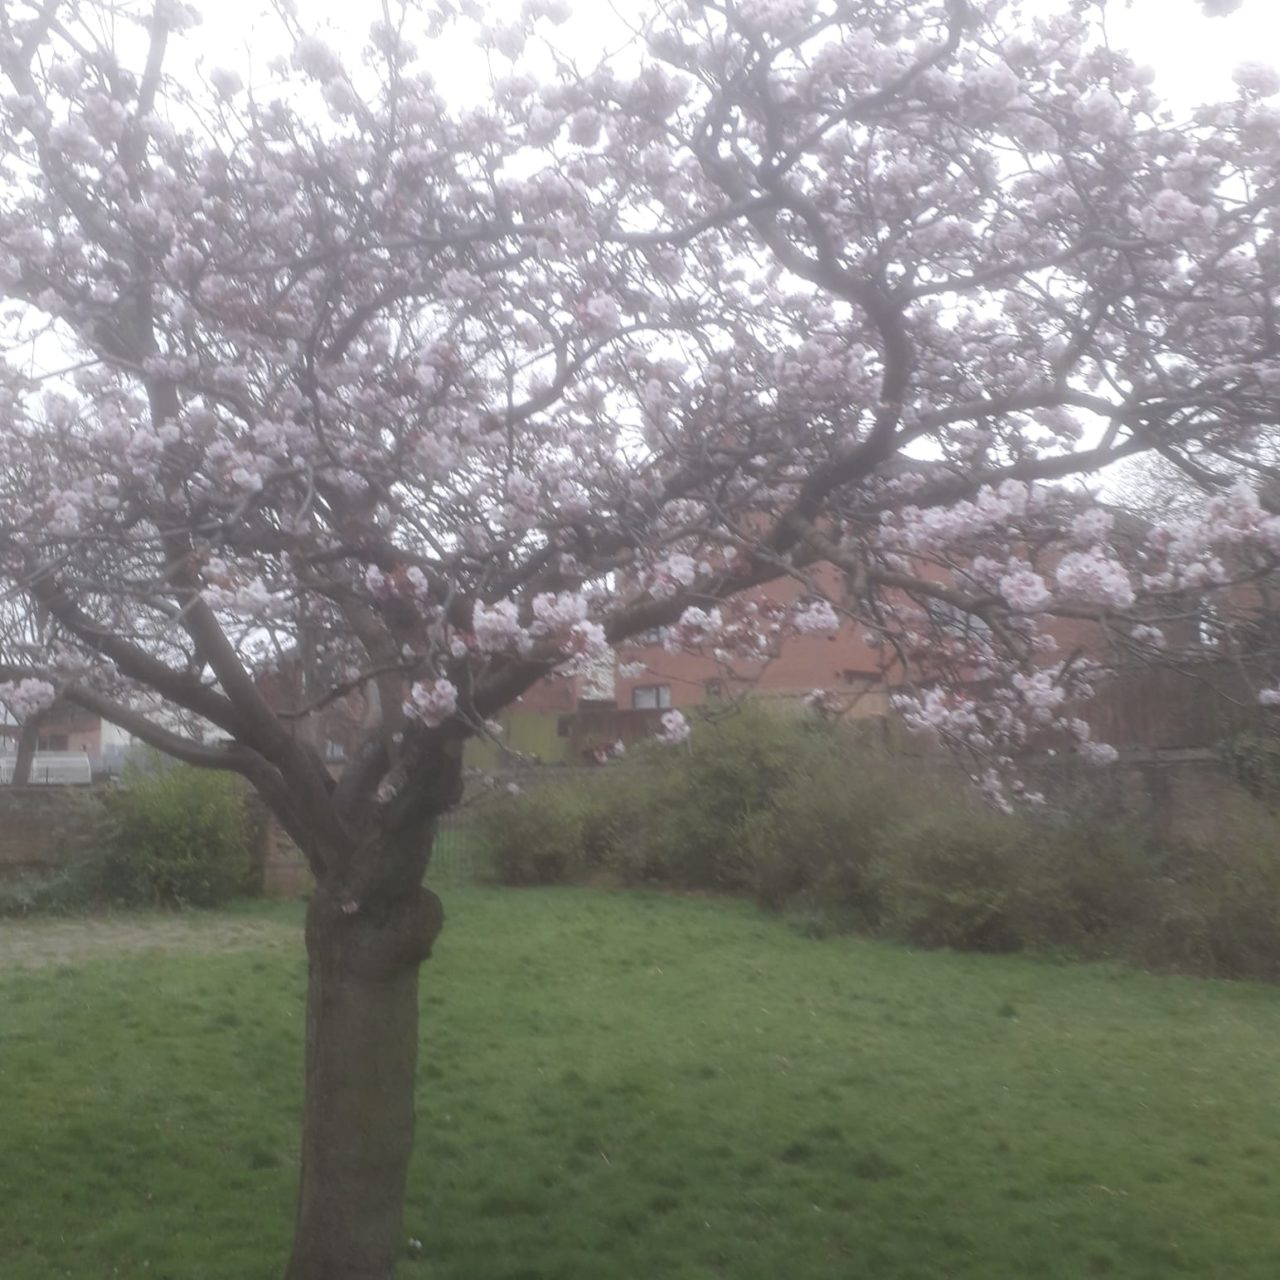 the tree in full blossom